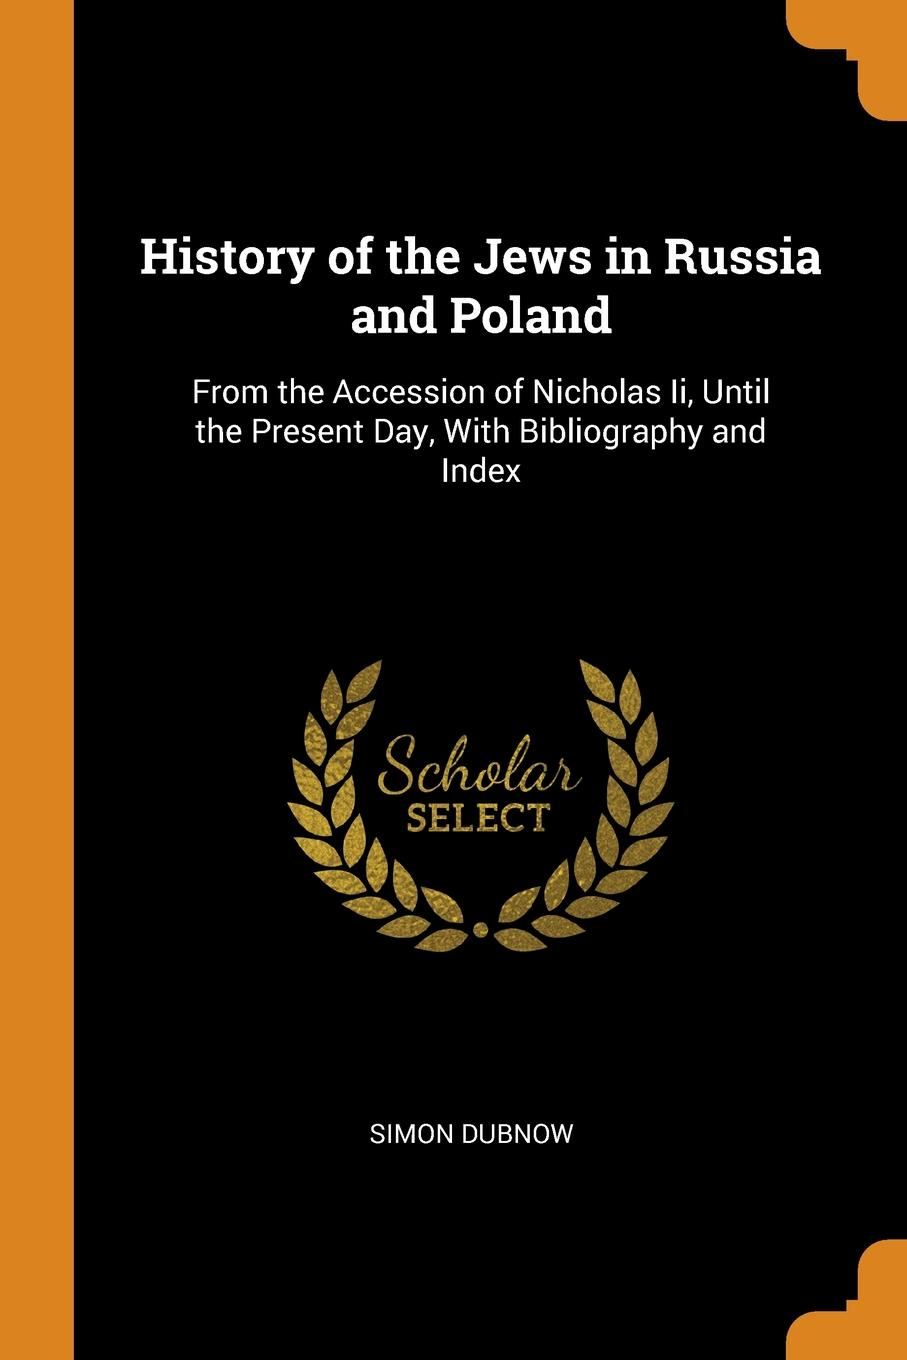 Simon Dubnow History of the Jews in Russia and Poland. From the Accession of Nicholas Ii, Until the Present Day, With Bibliography and Index dubnow simon history of the jews in russia and poland volume 1 of 3 from the beginning until the death of alexander i 1825